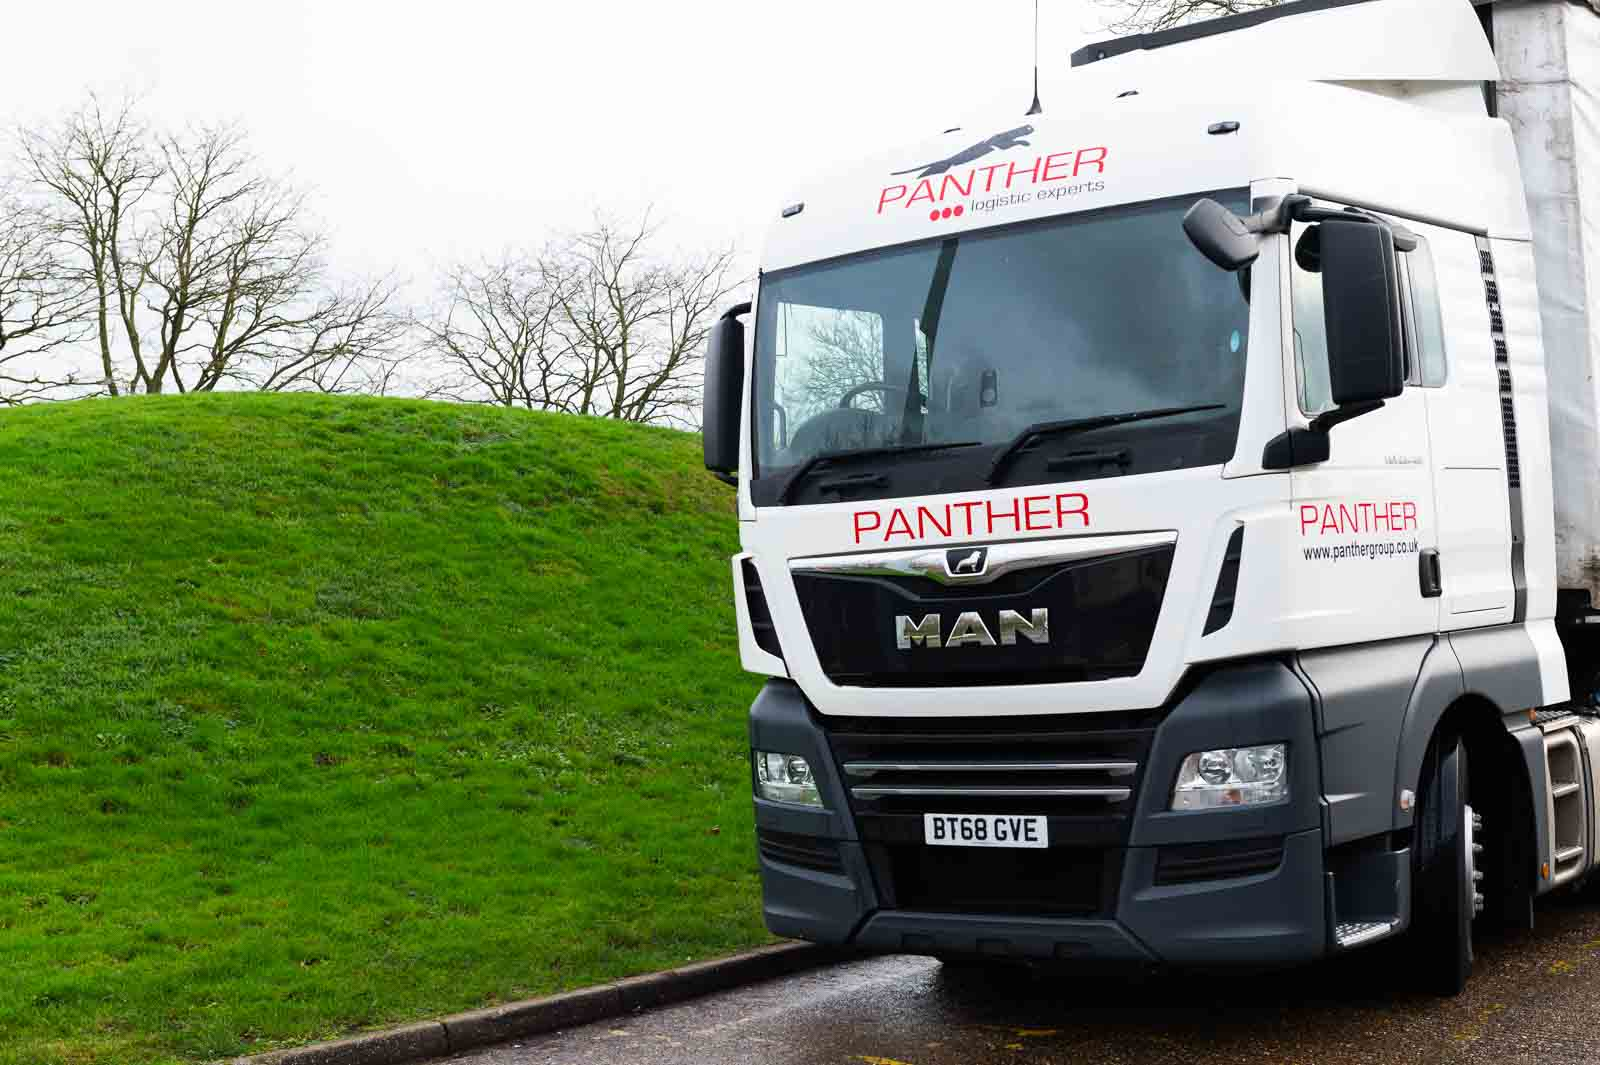 A Panther Logistics lorry on its way out for a two man delivery in the UK